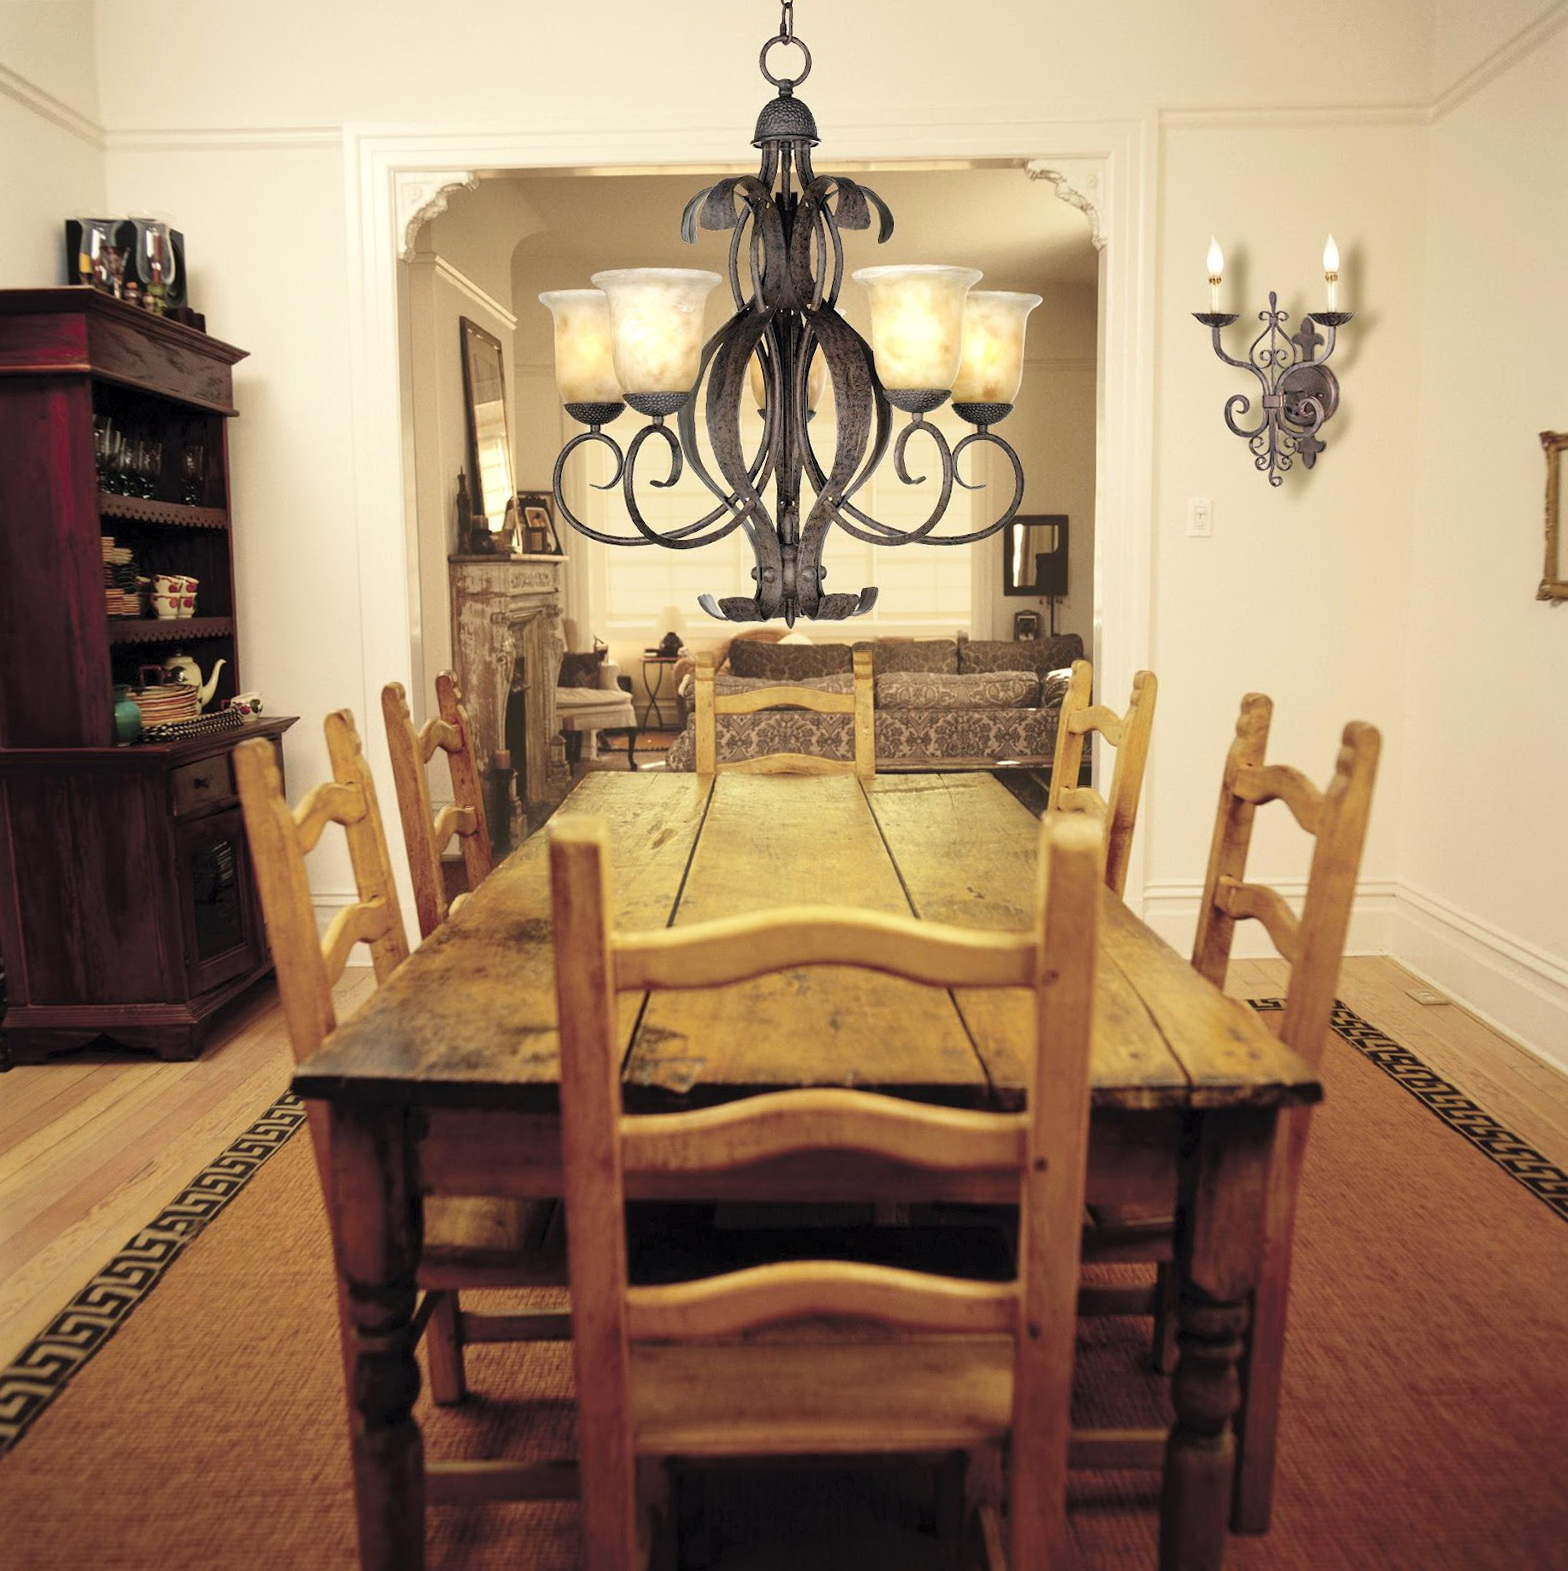 Dining room chandelier height from table home design ideas - Dining room chandelier height ...